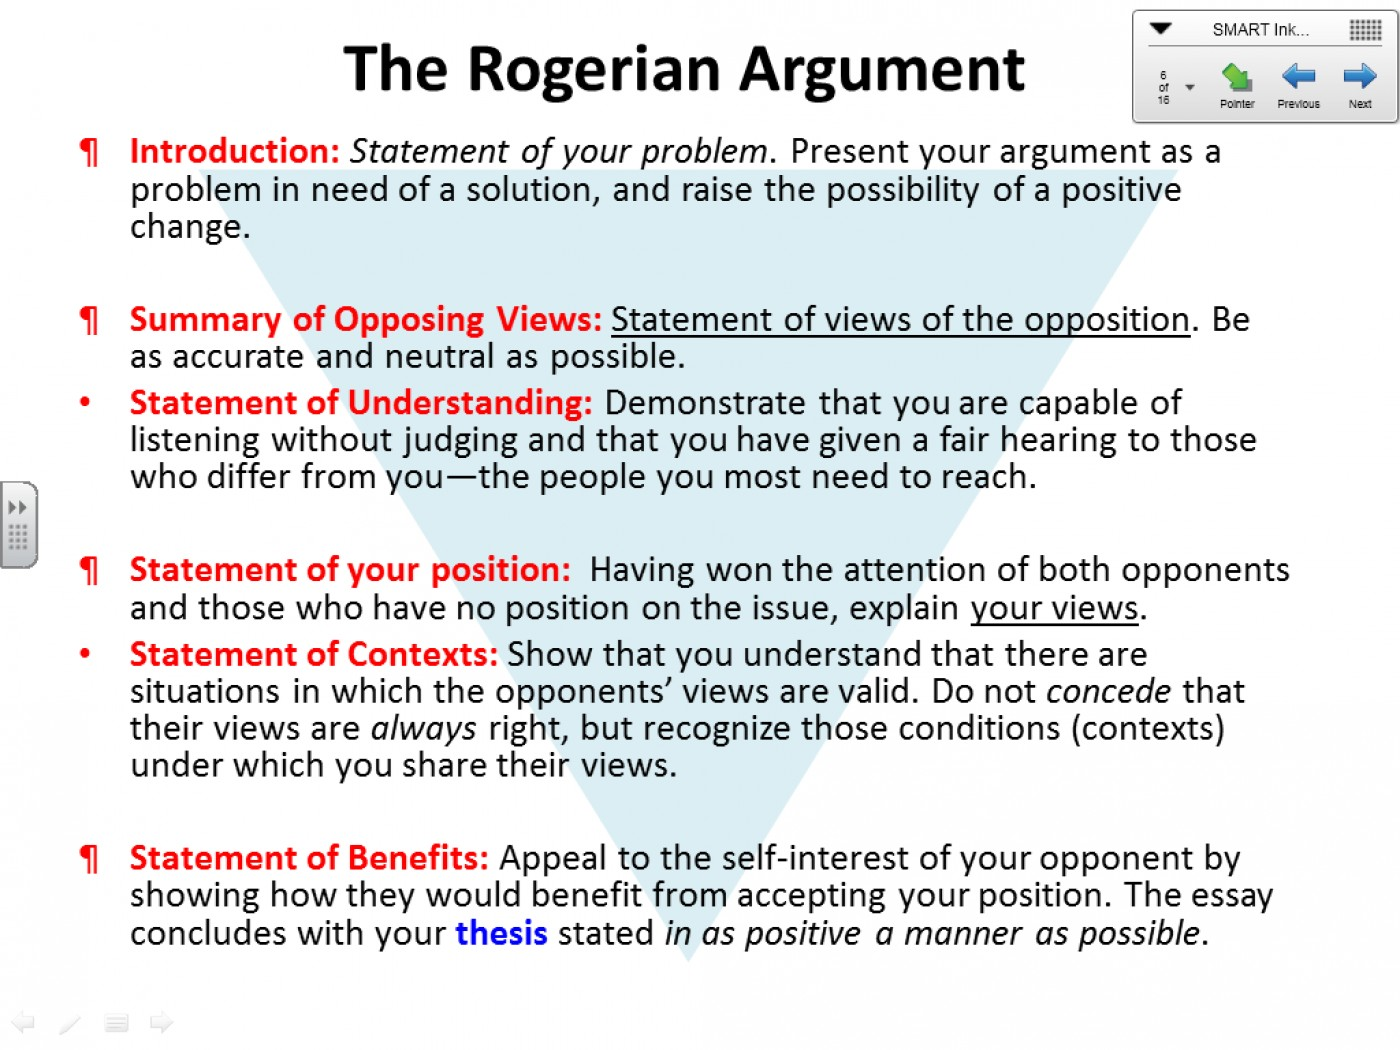 019 Argumentative Essay Fallacy Custom Paper Help Gipaperzlro What Is An Definition Roge Example And Its Parts Brainly Topics Ppt Powerpoint Outline Pdf Fantastic Define Format & Examples Claim Dictionary 1400